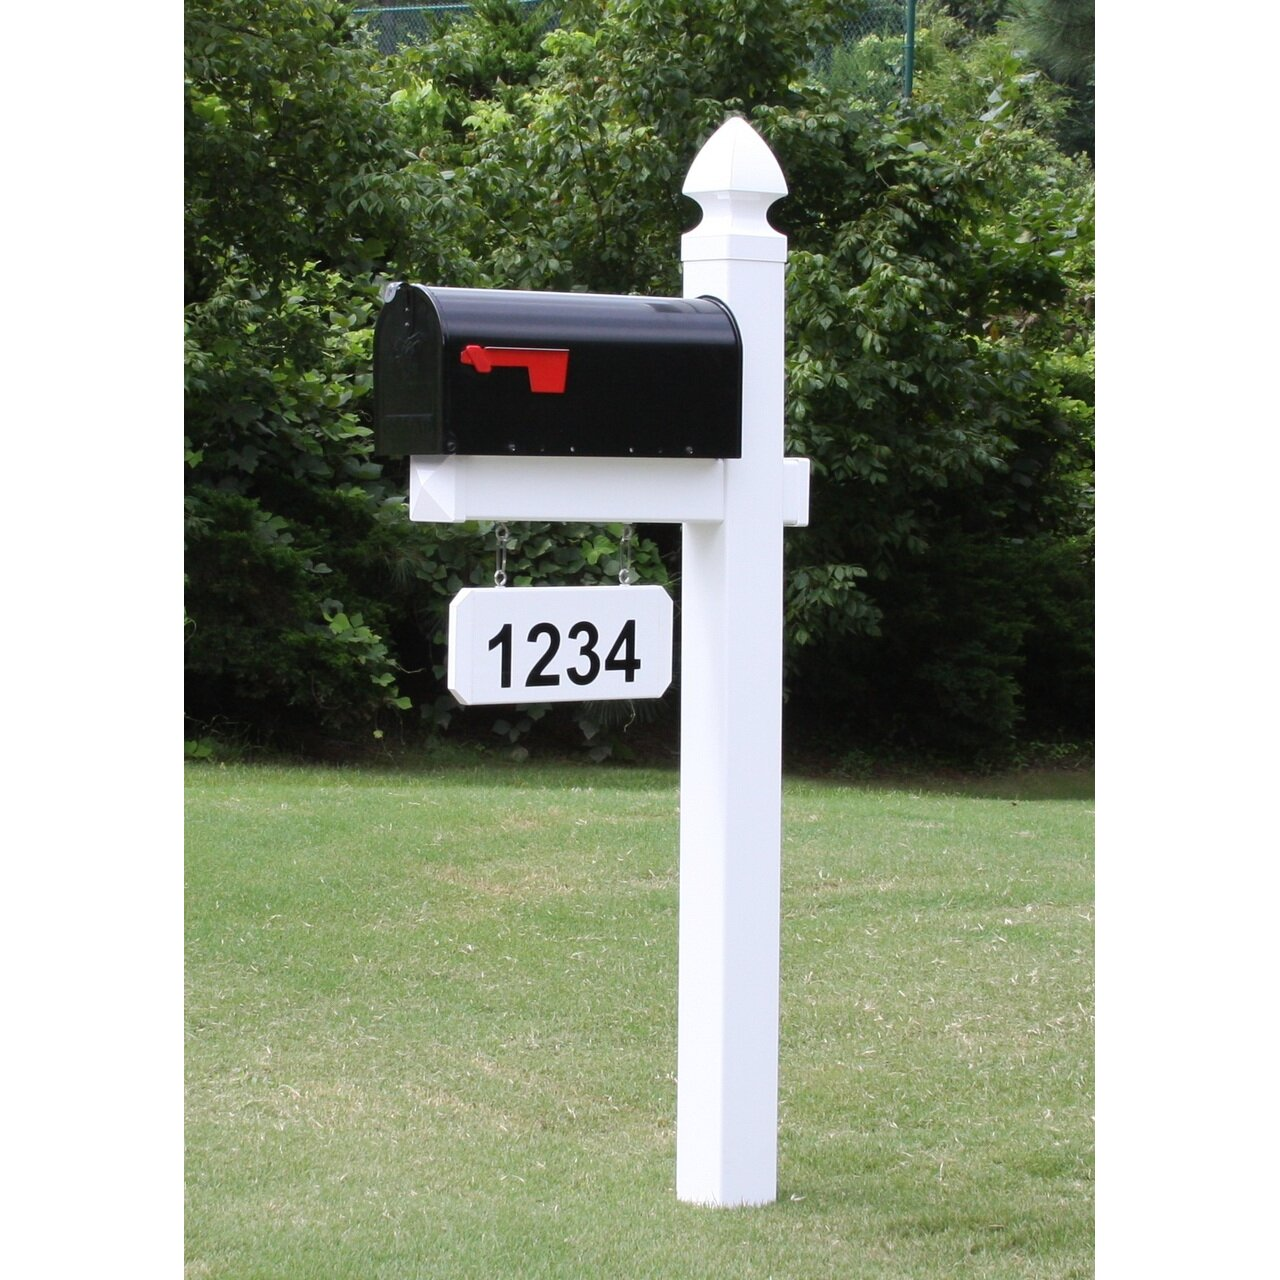 4everproducts Post Mounted Mailbox Amp Reviews Wayfair